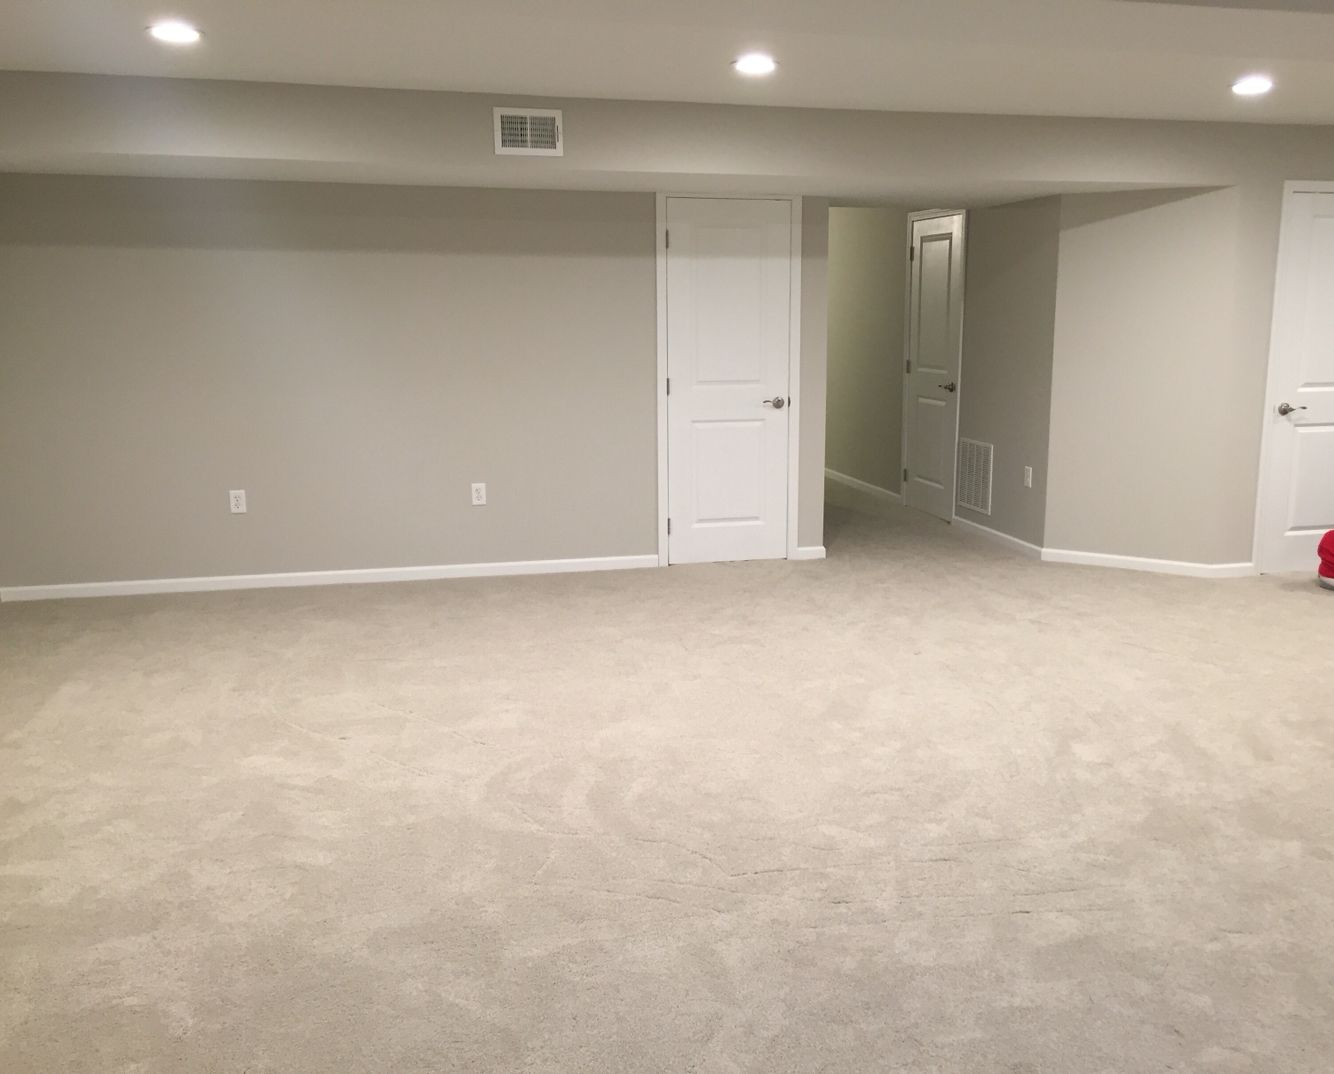 Finished Basement remodel project: walls painted with ...